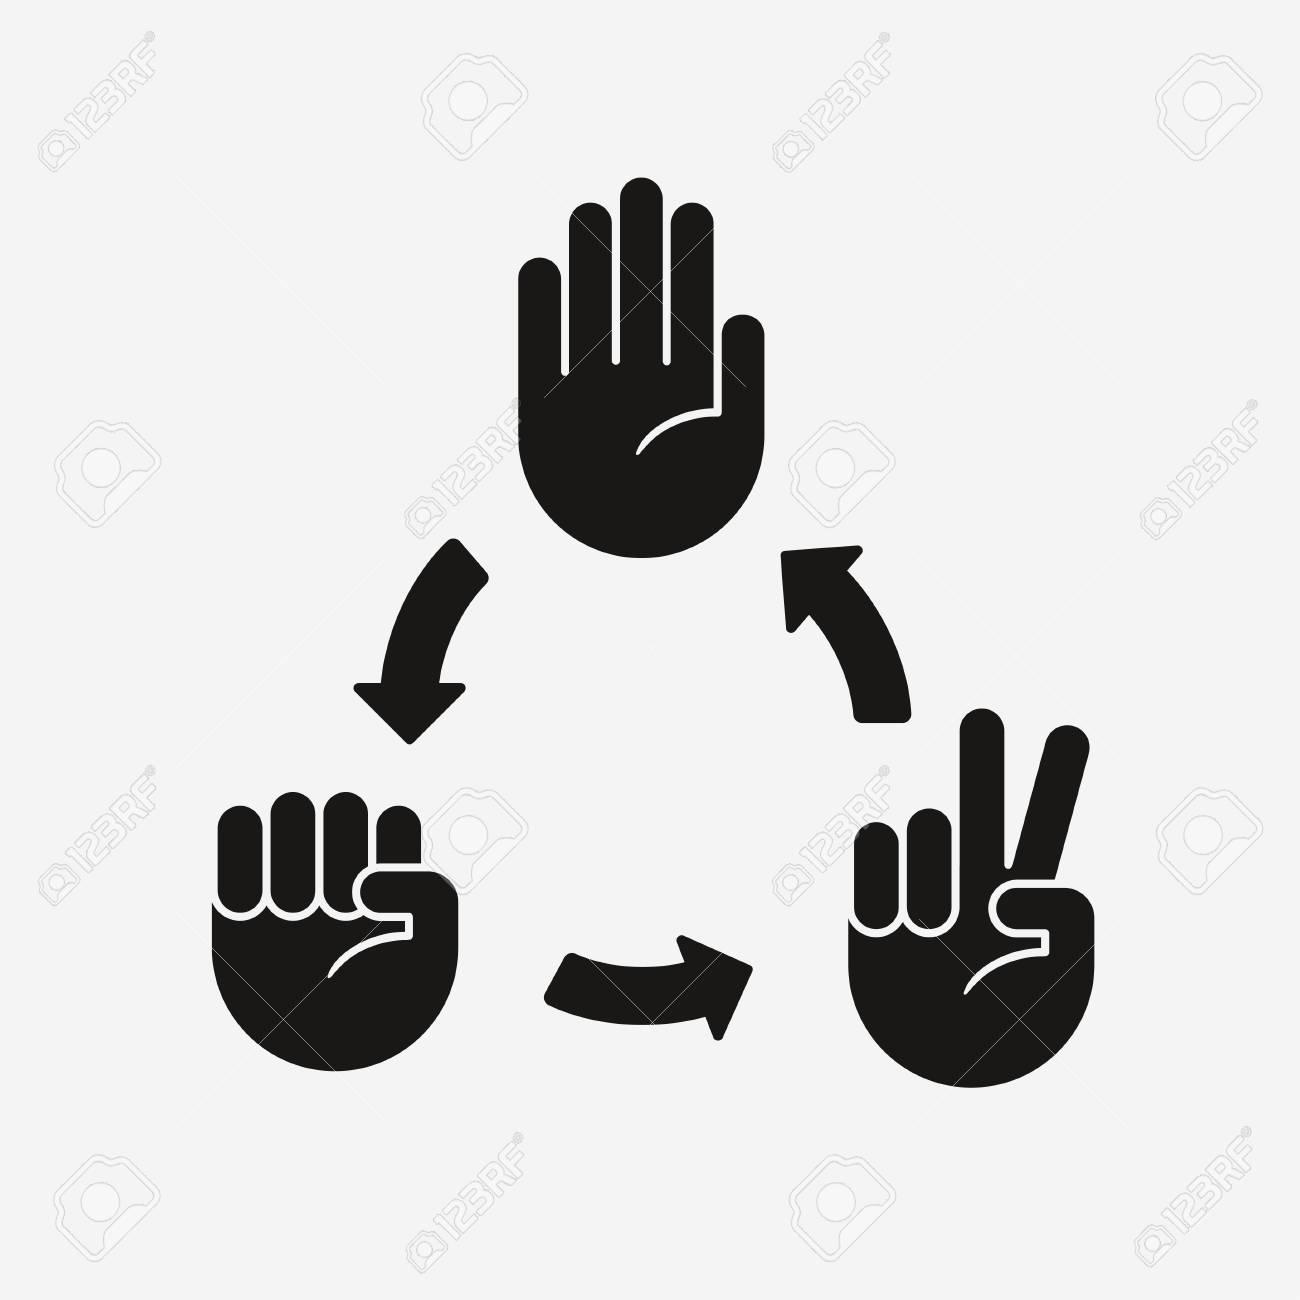 hight resolution of rock paper scissors game diagram hand icons with arrows showing which gesture wins stock